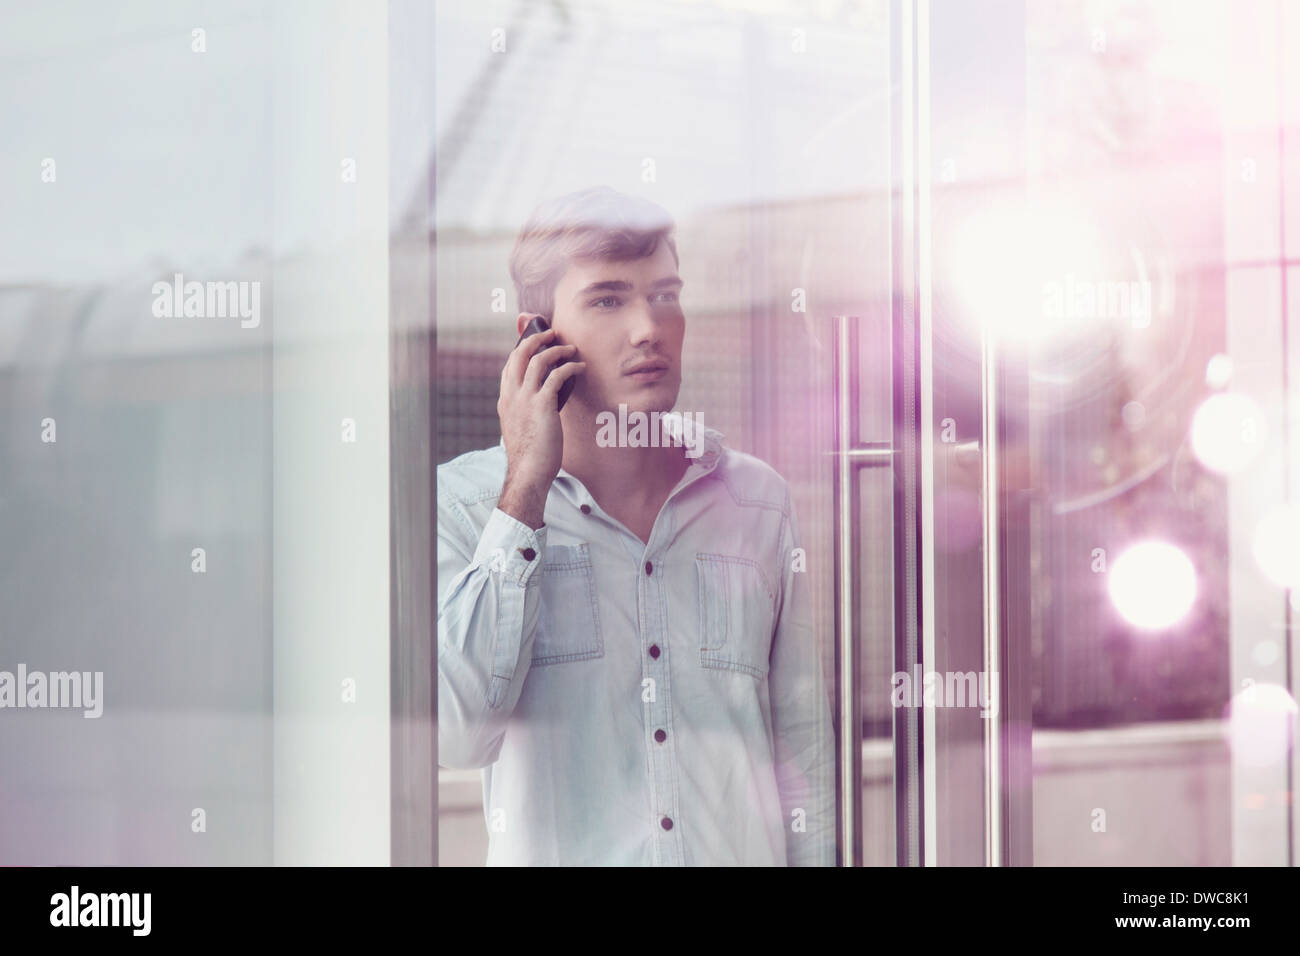 Young man behind illuminated reflective glass talking on smartphone - Stock Image